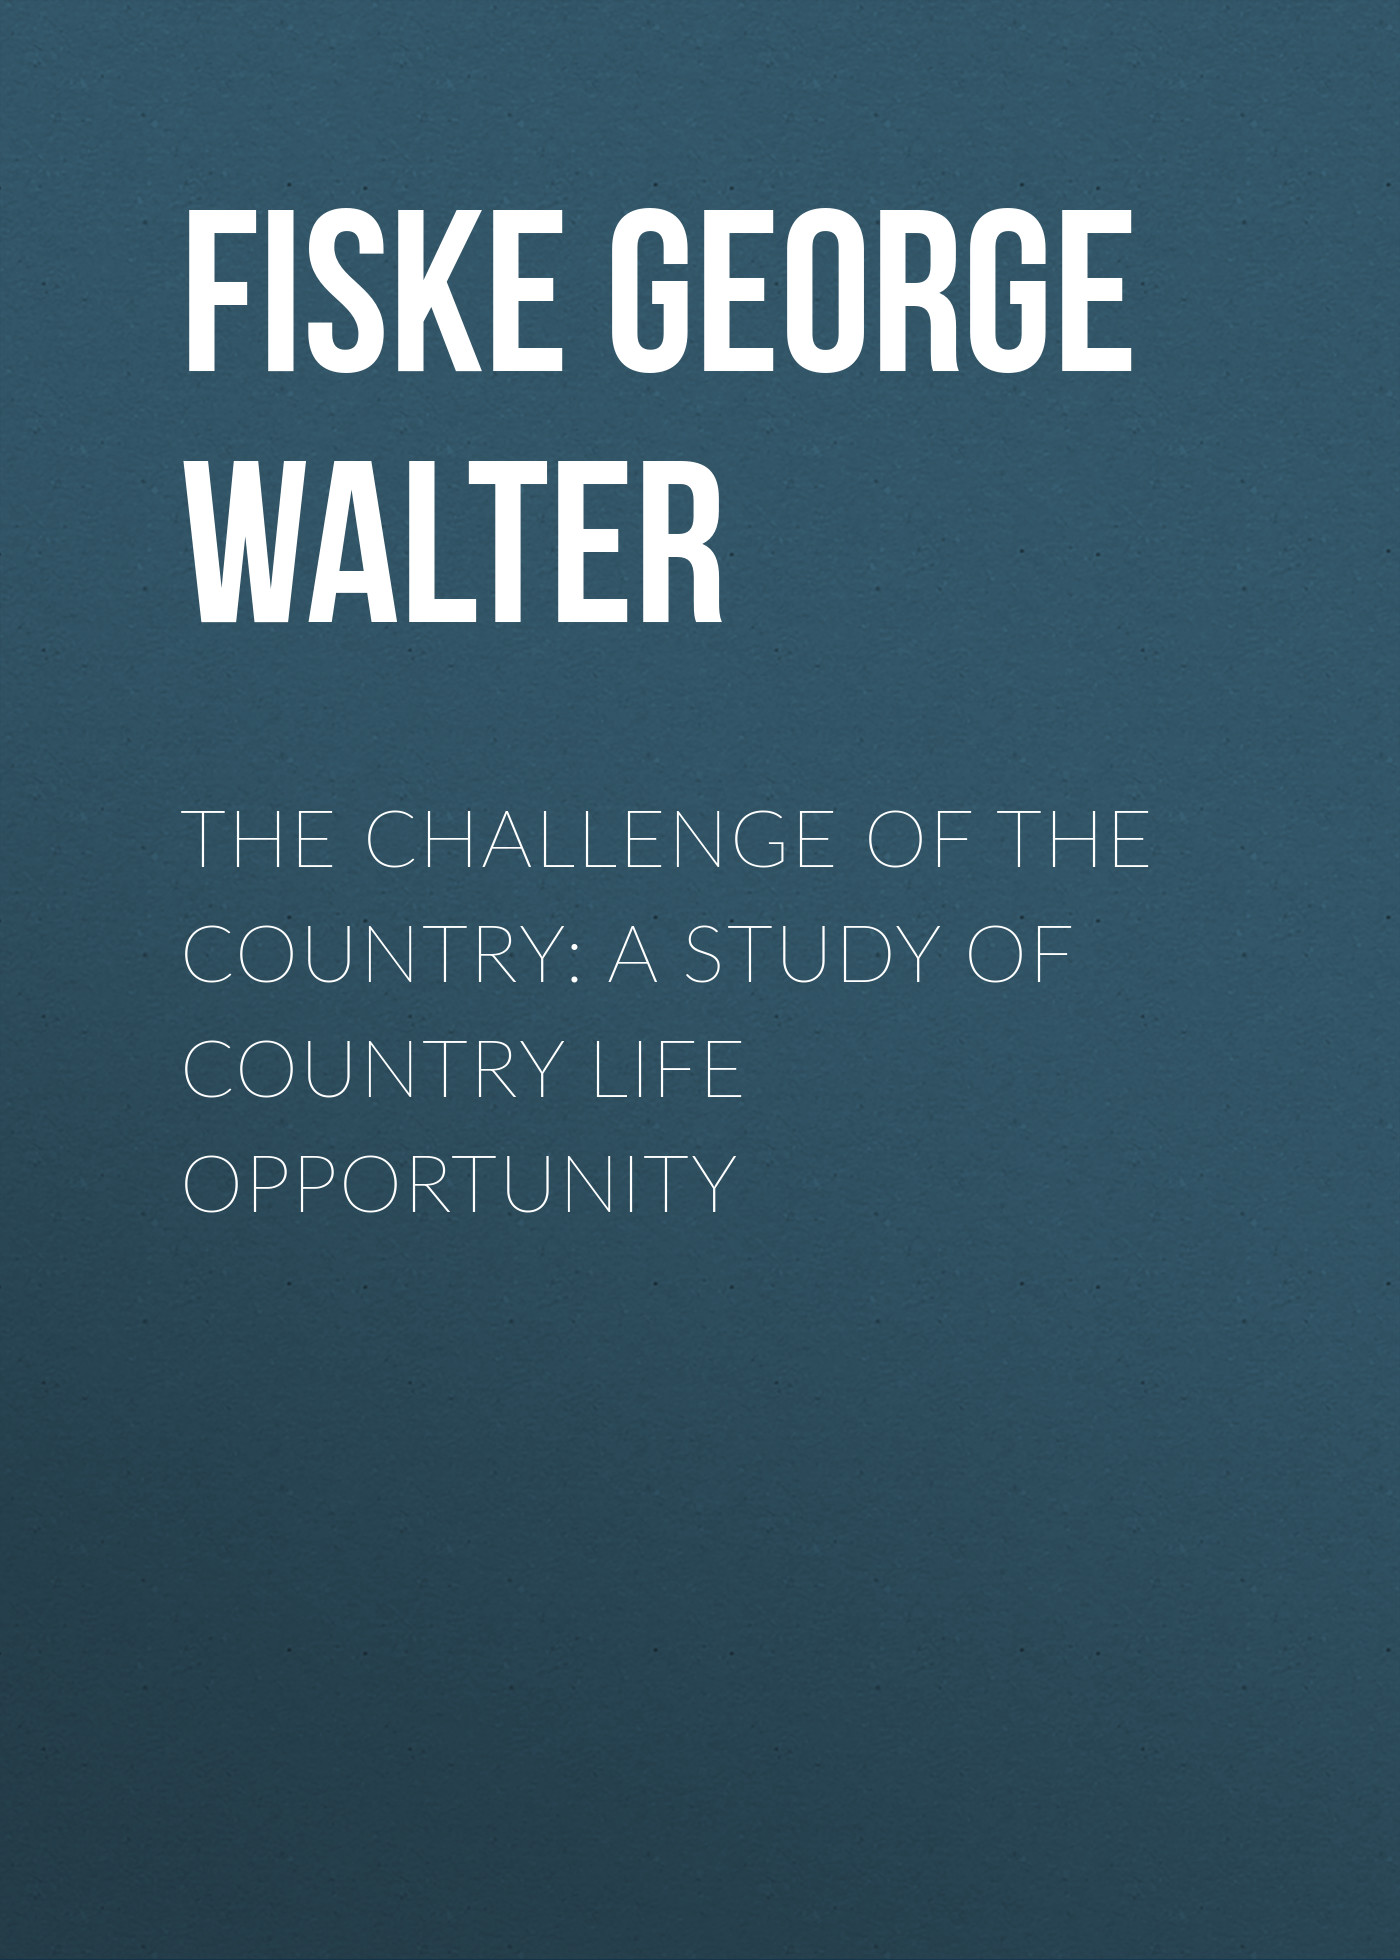 Fiske George Walter The Challenge of the Country: A Study of Country Life Opportunity country pursuits